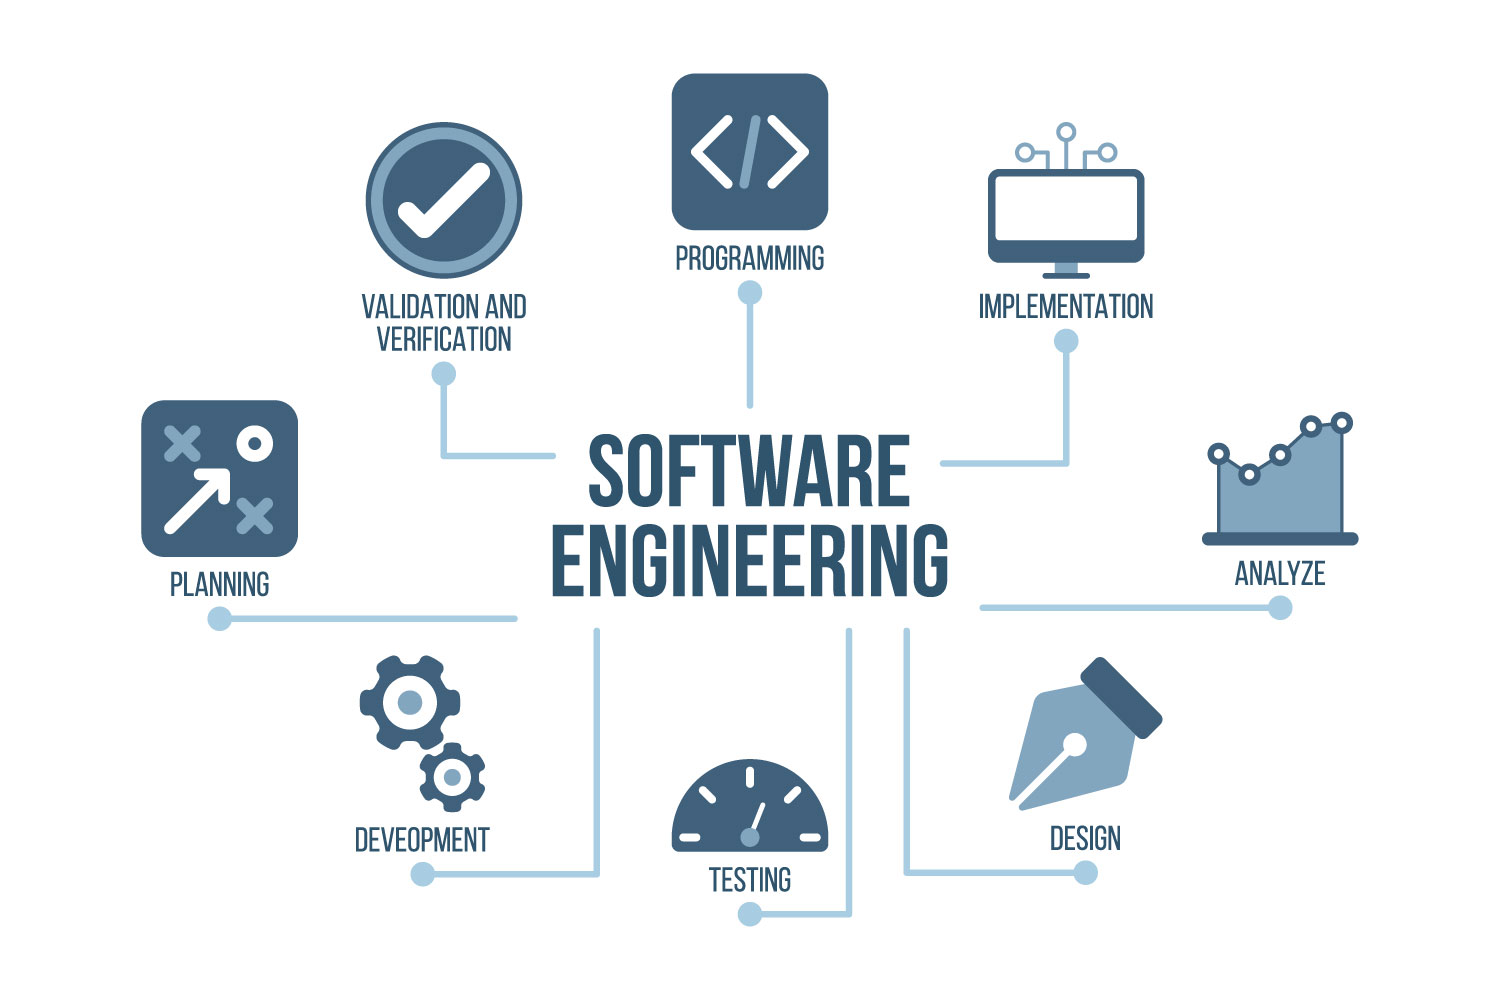 Software engineering stages